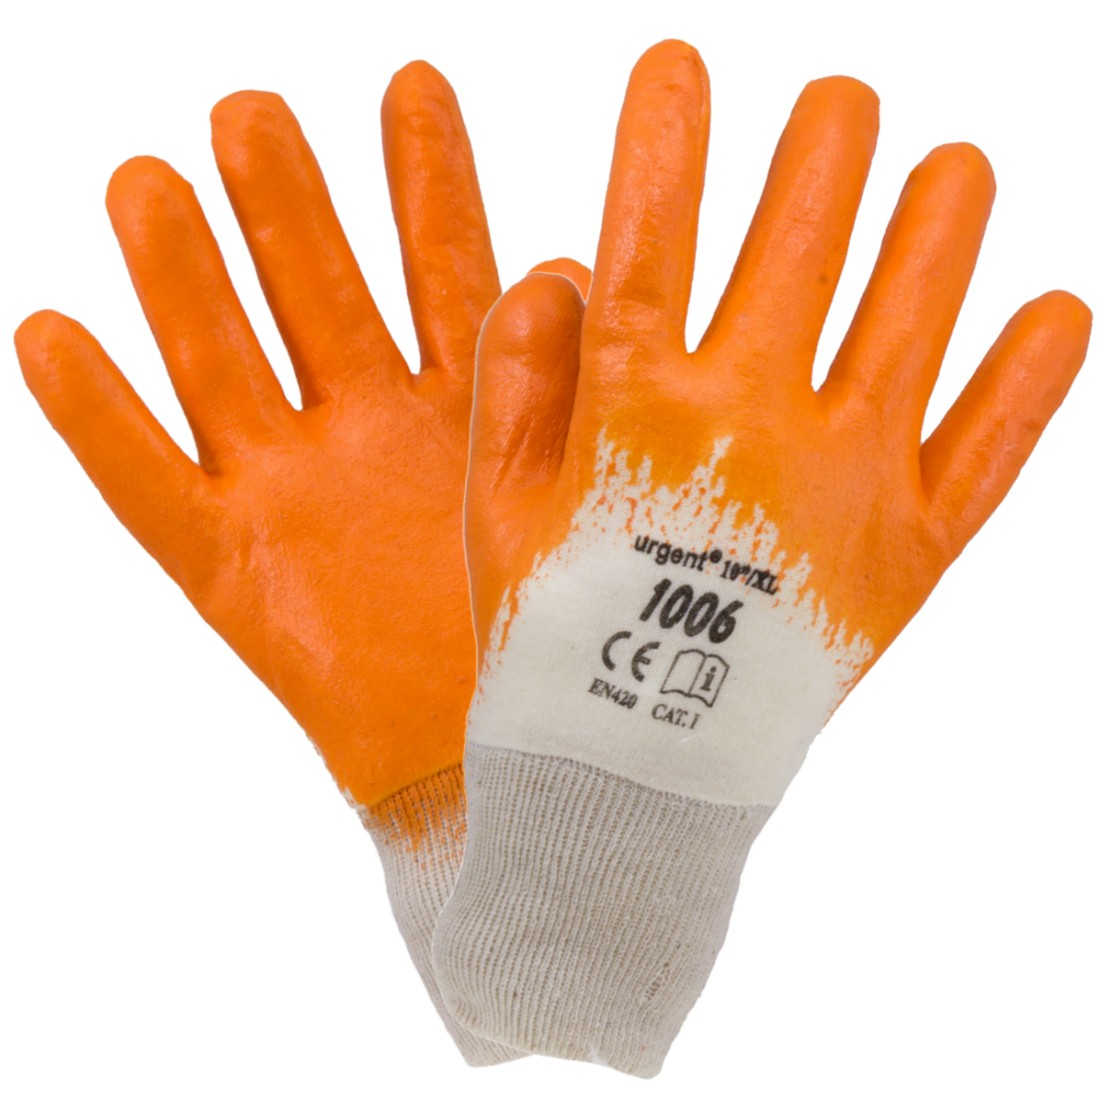 BASIC 1006 Nitrile Dipped Safety Gloves